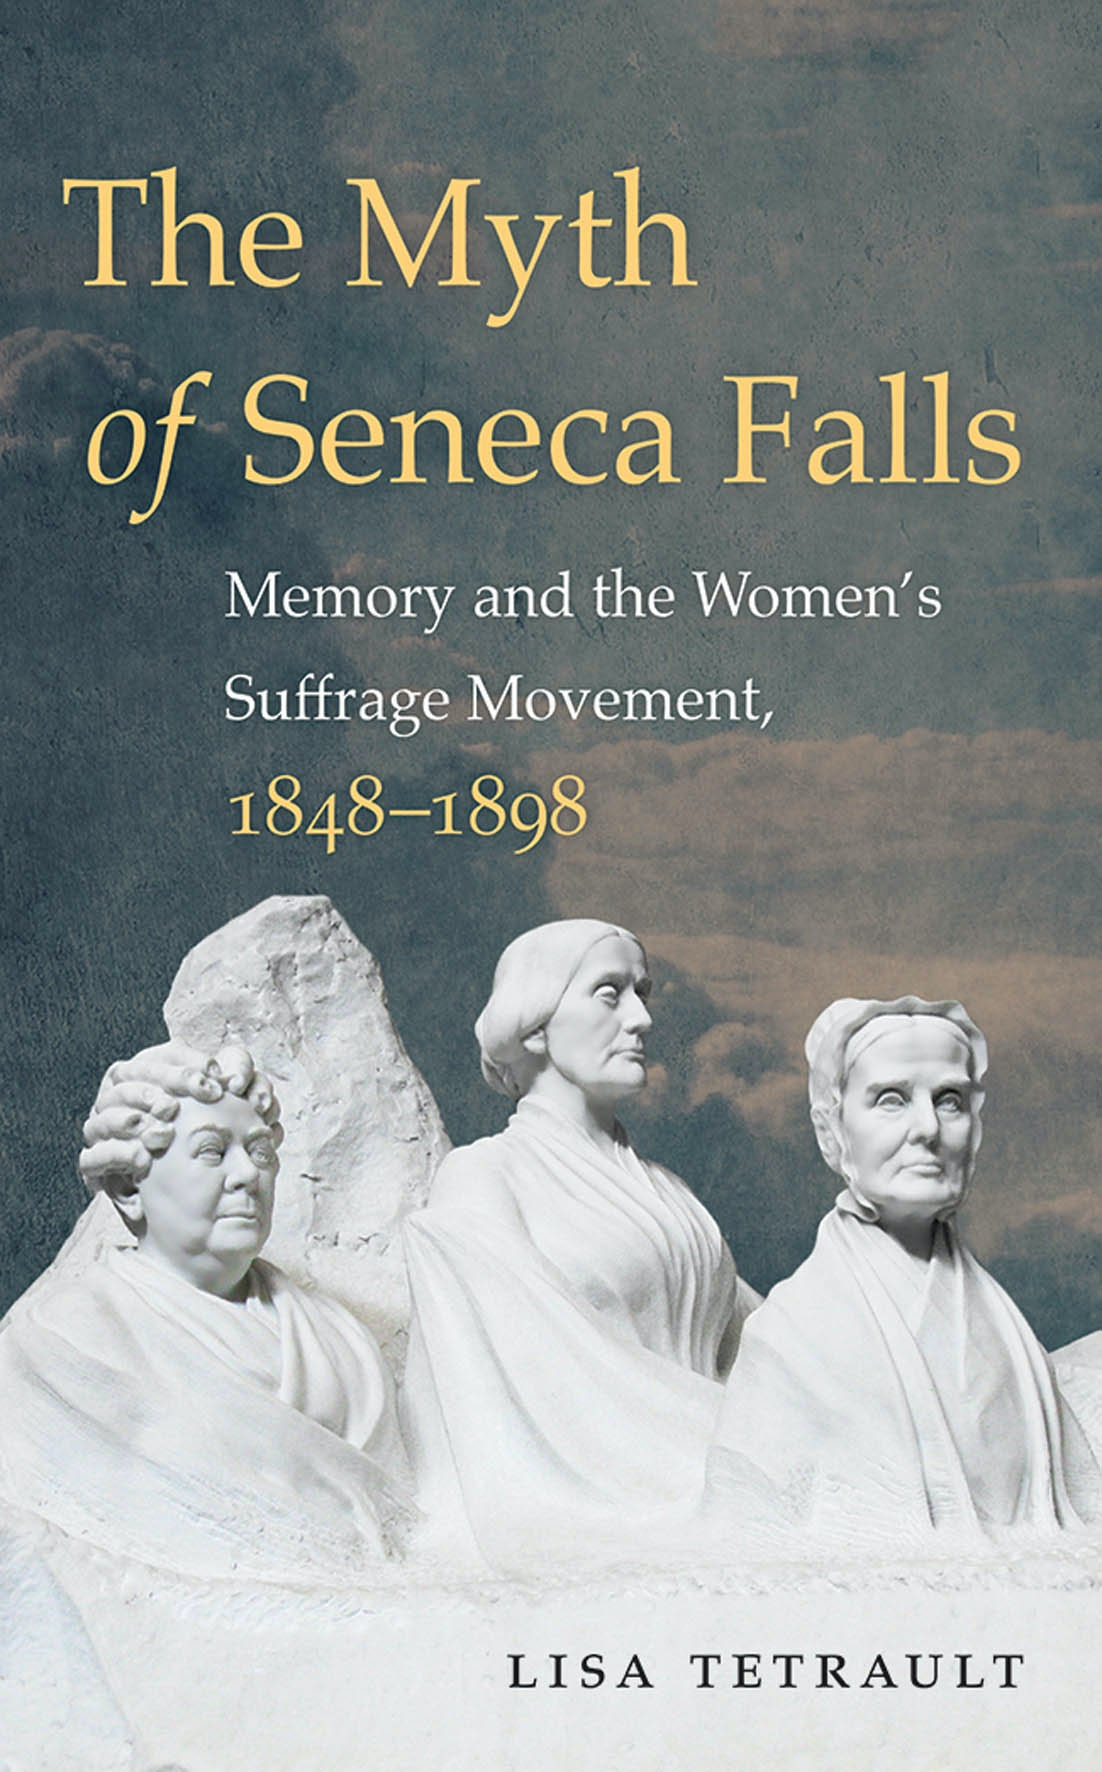 Citaten Seneca Falls : The myth of seneca falls lisa tetrault university of north